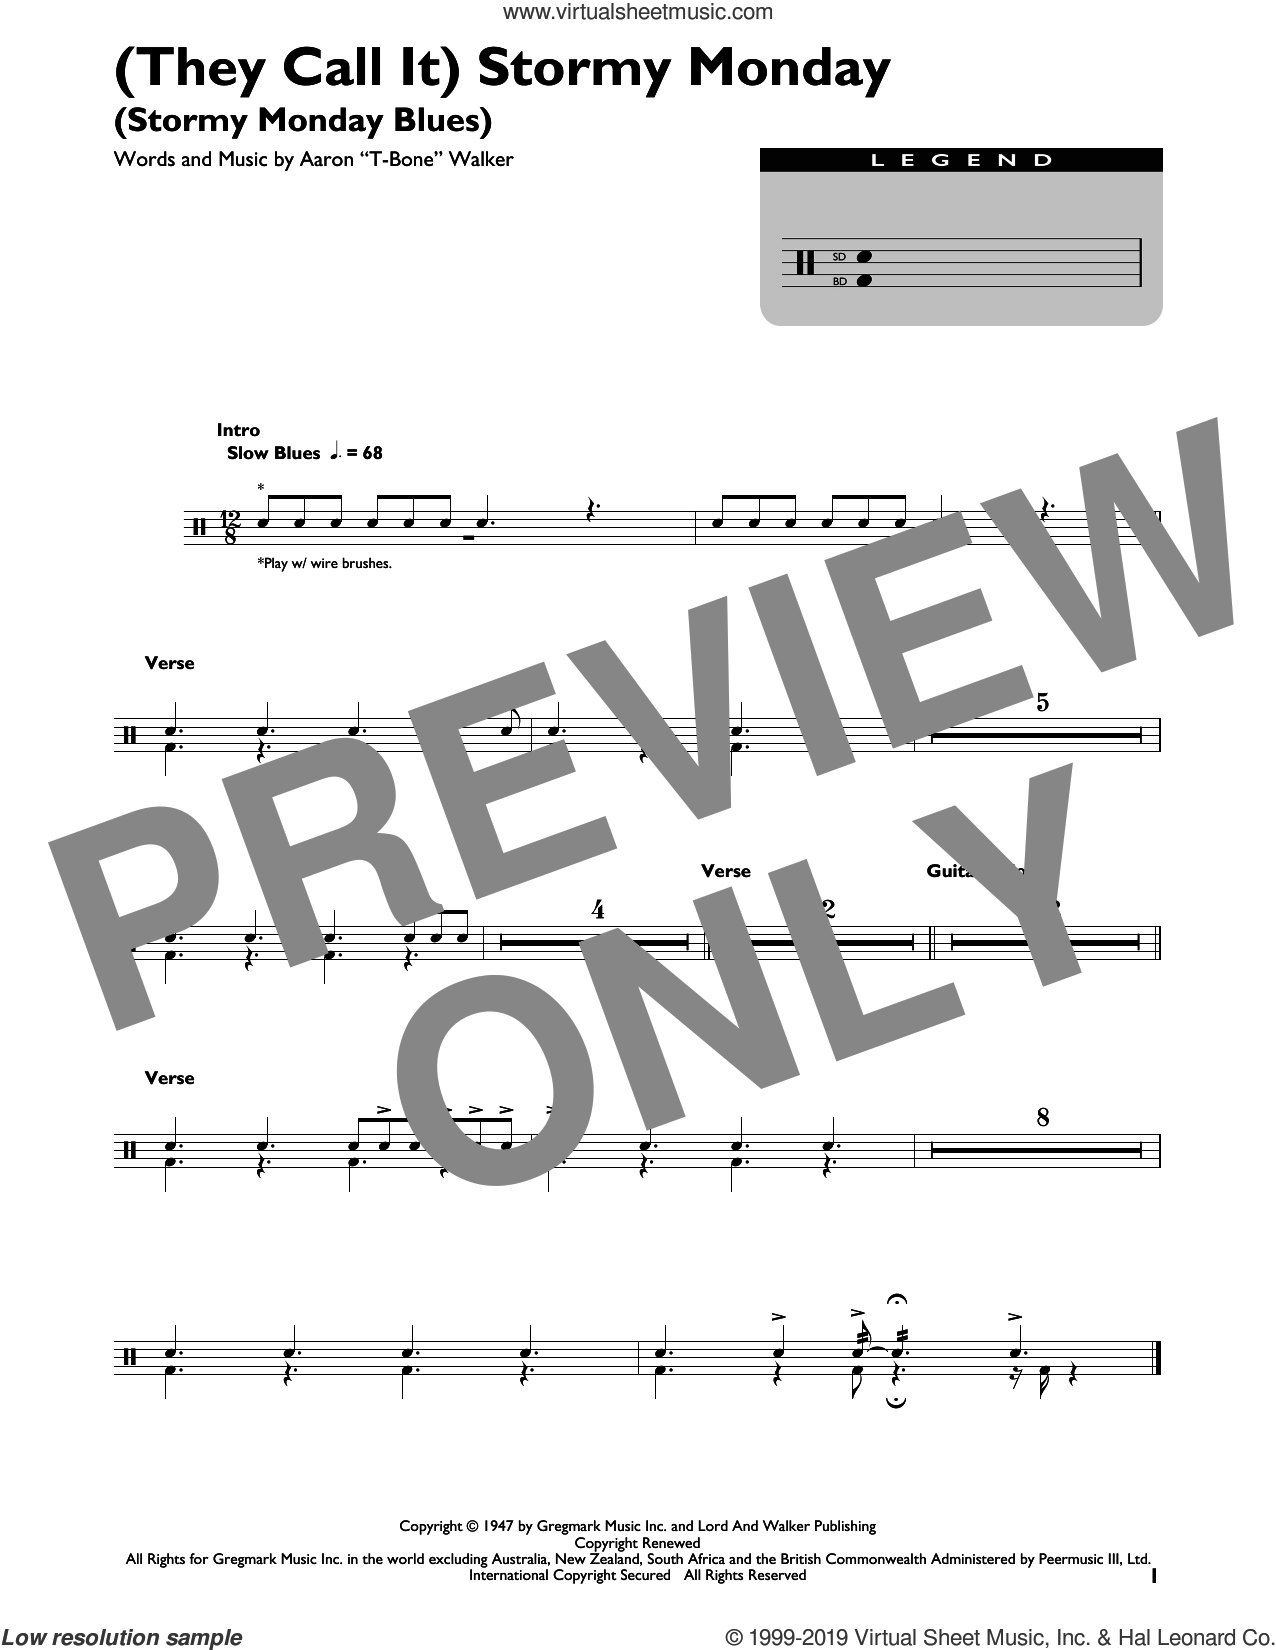 (They Call It) Stormy Monday (Stormy Monday Blues) sheet music for drums by Aaron 'T-Bone' Walker, intermediate skill level